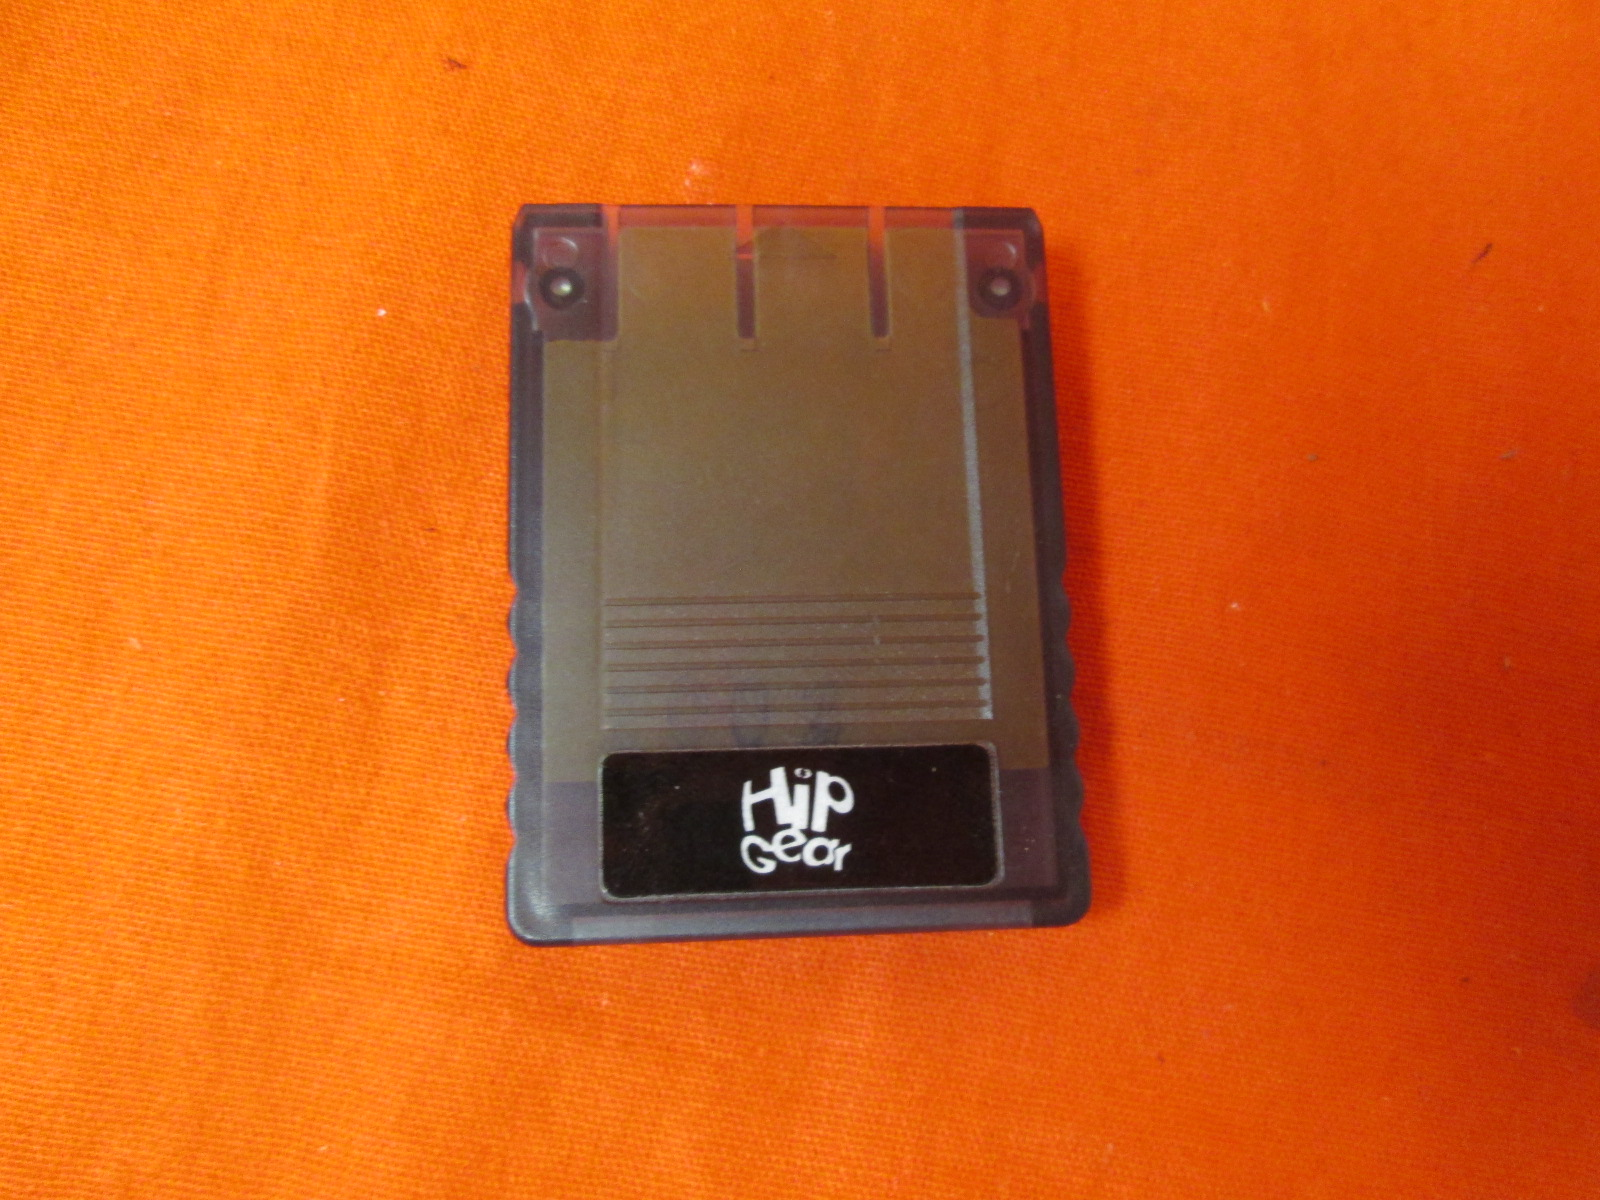 Hip Interactive Psx 1 MB Memory Card For PlayStation 1